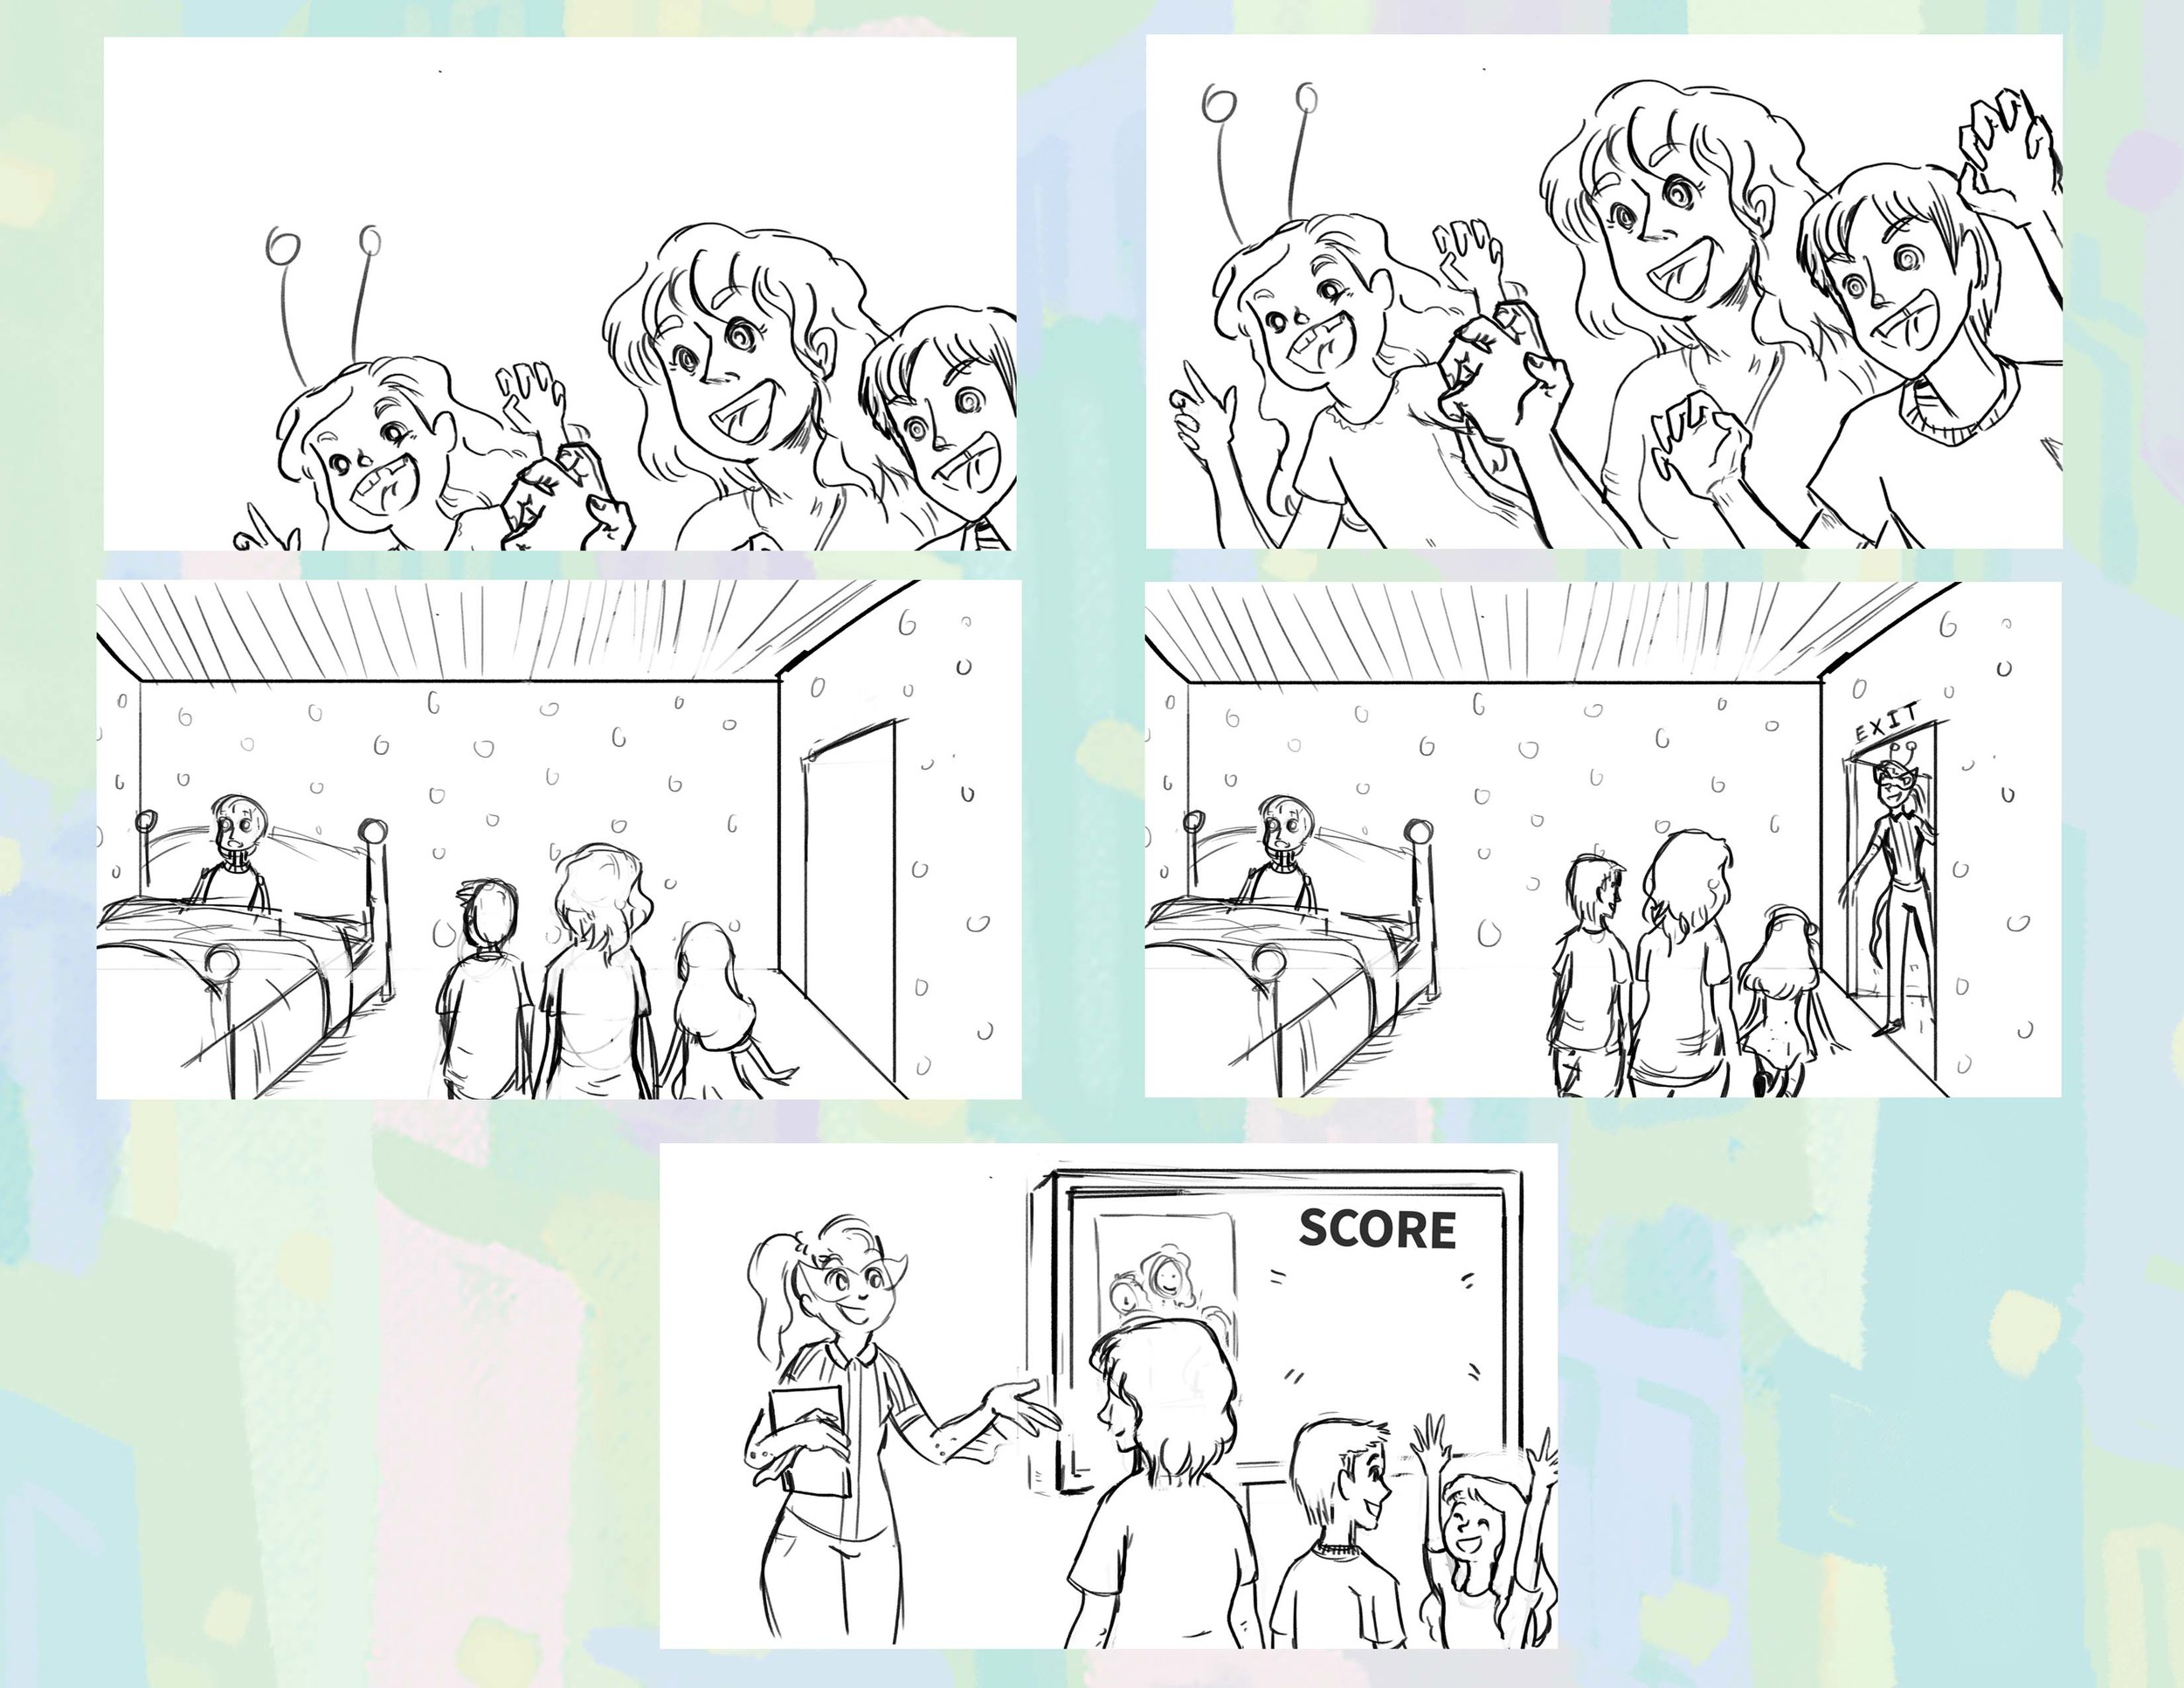 Simulated Scare Animatic Drawings  The team scares the child simulator, are escorted out by the referee and given their score!  Photoshop